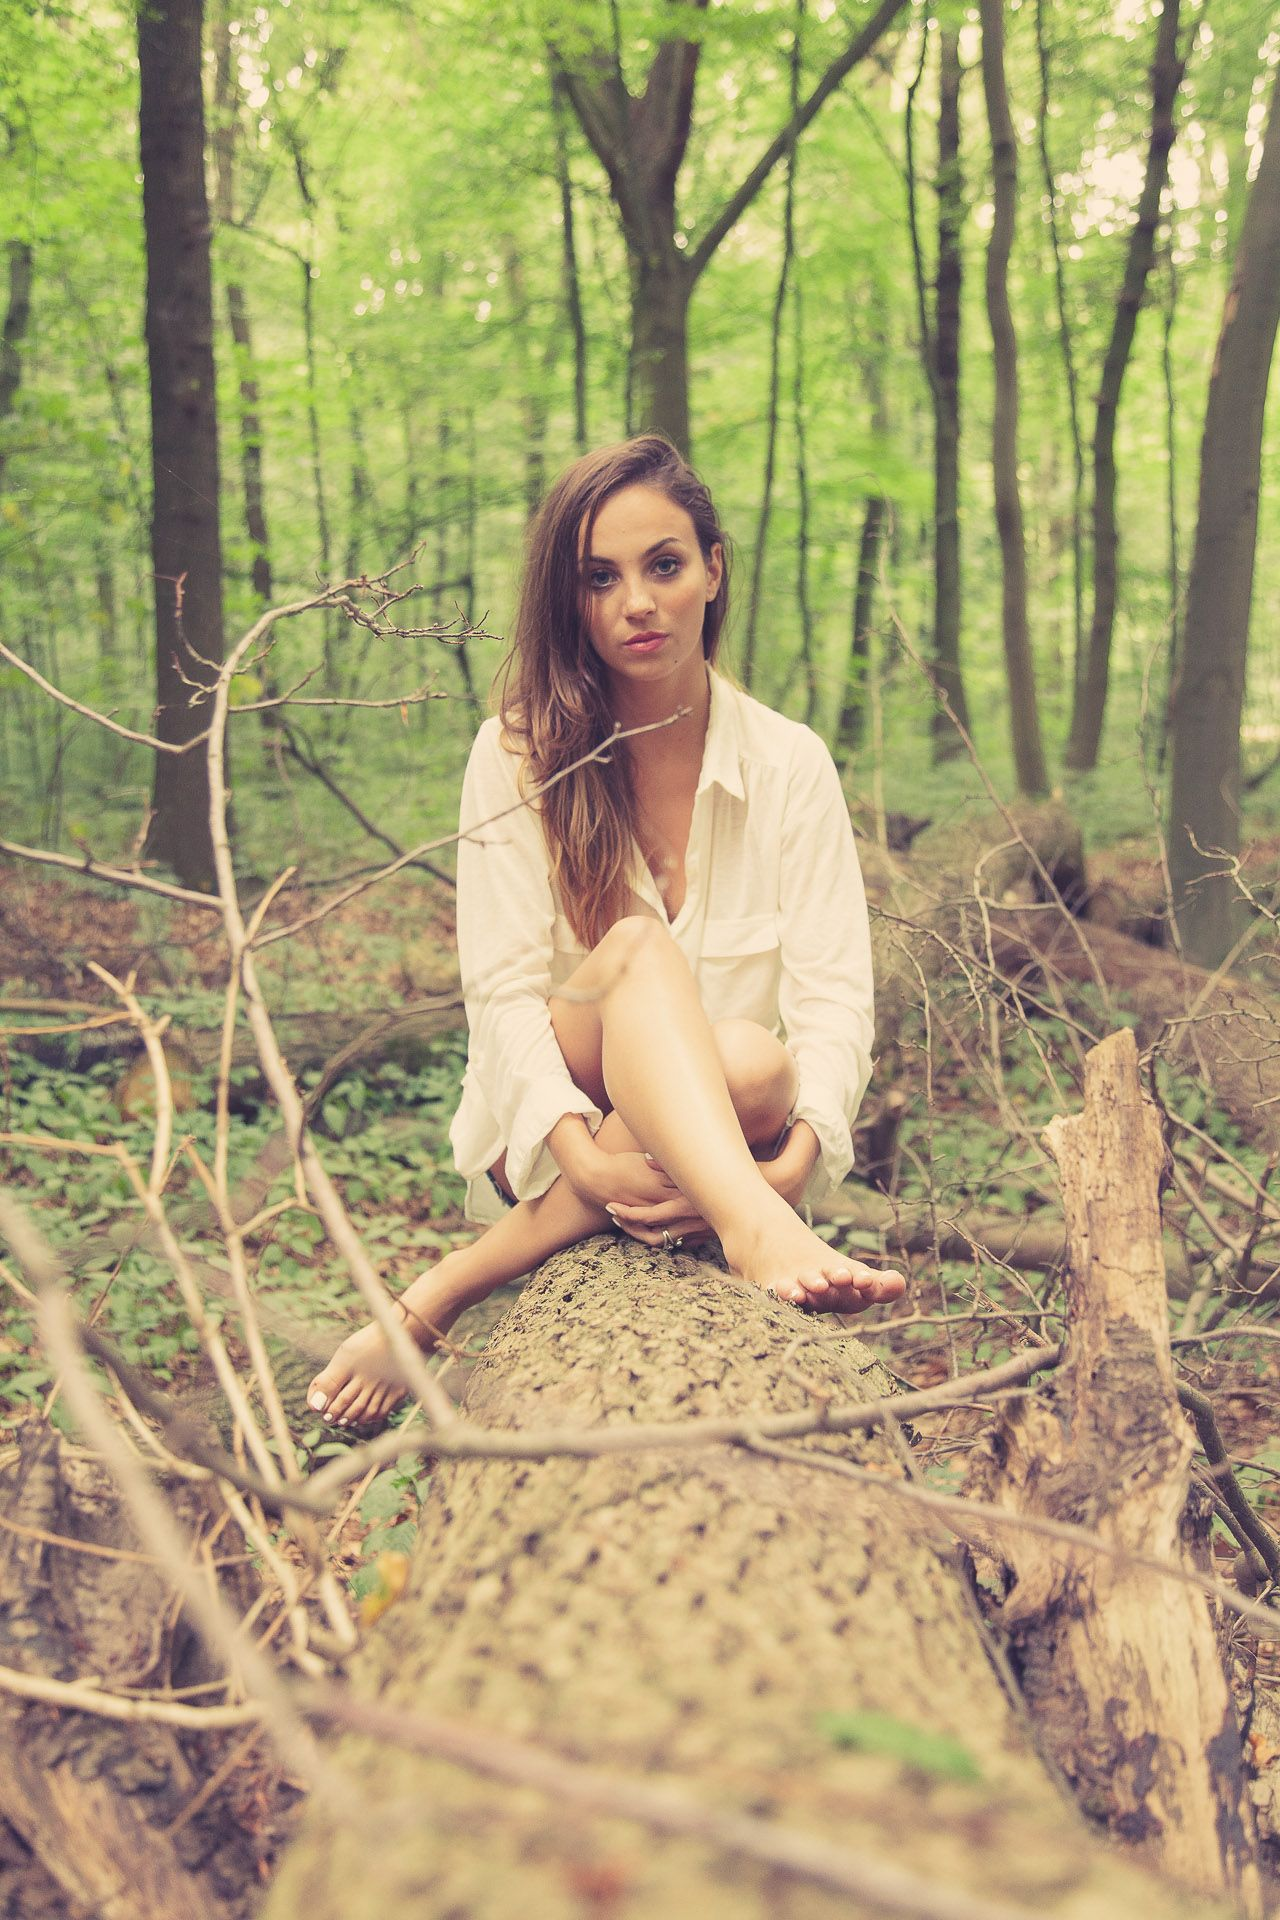 Beautiful girl in the forest, wearing only a white shirt | Model ...